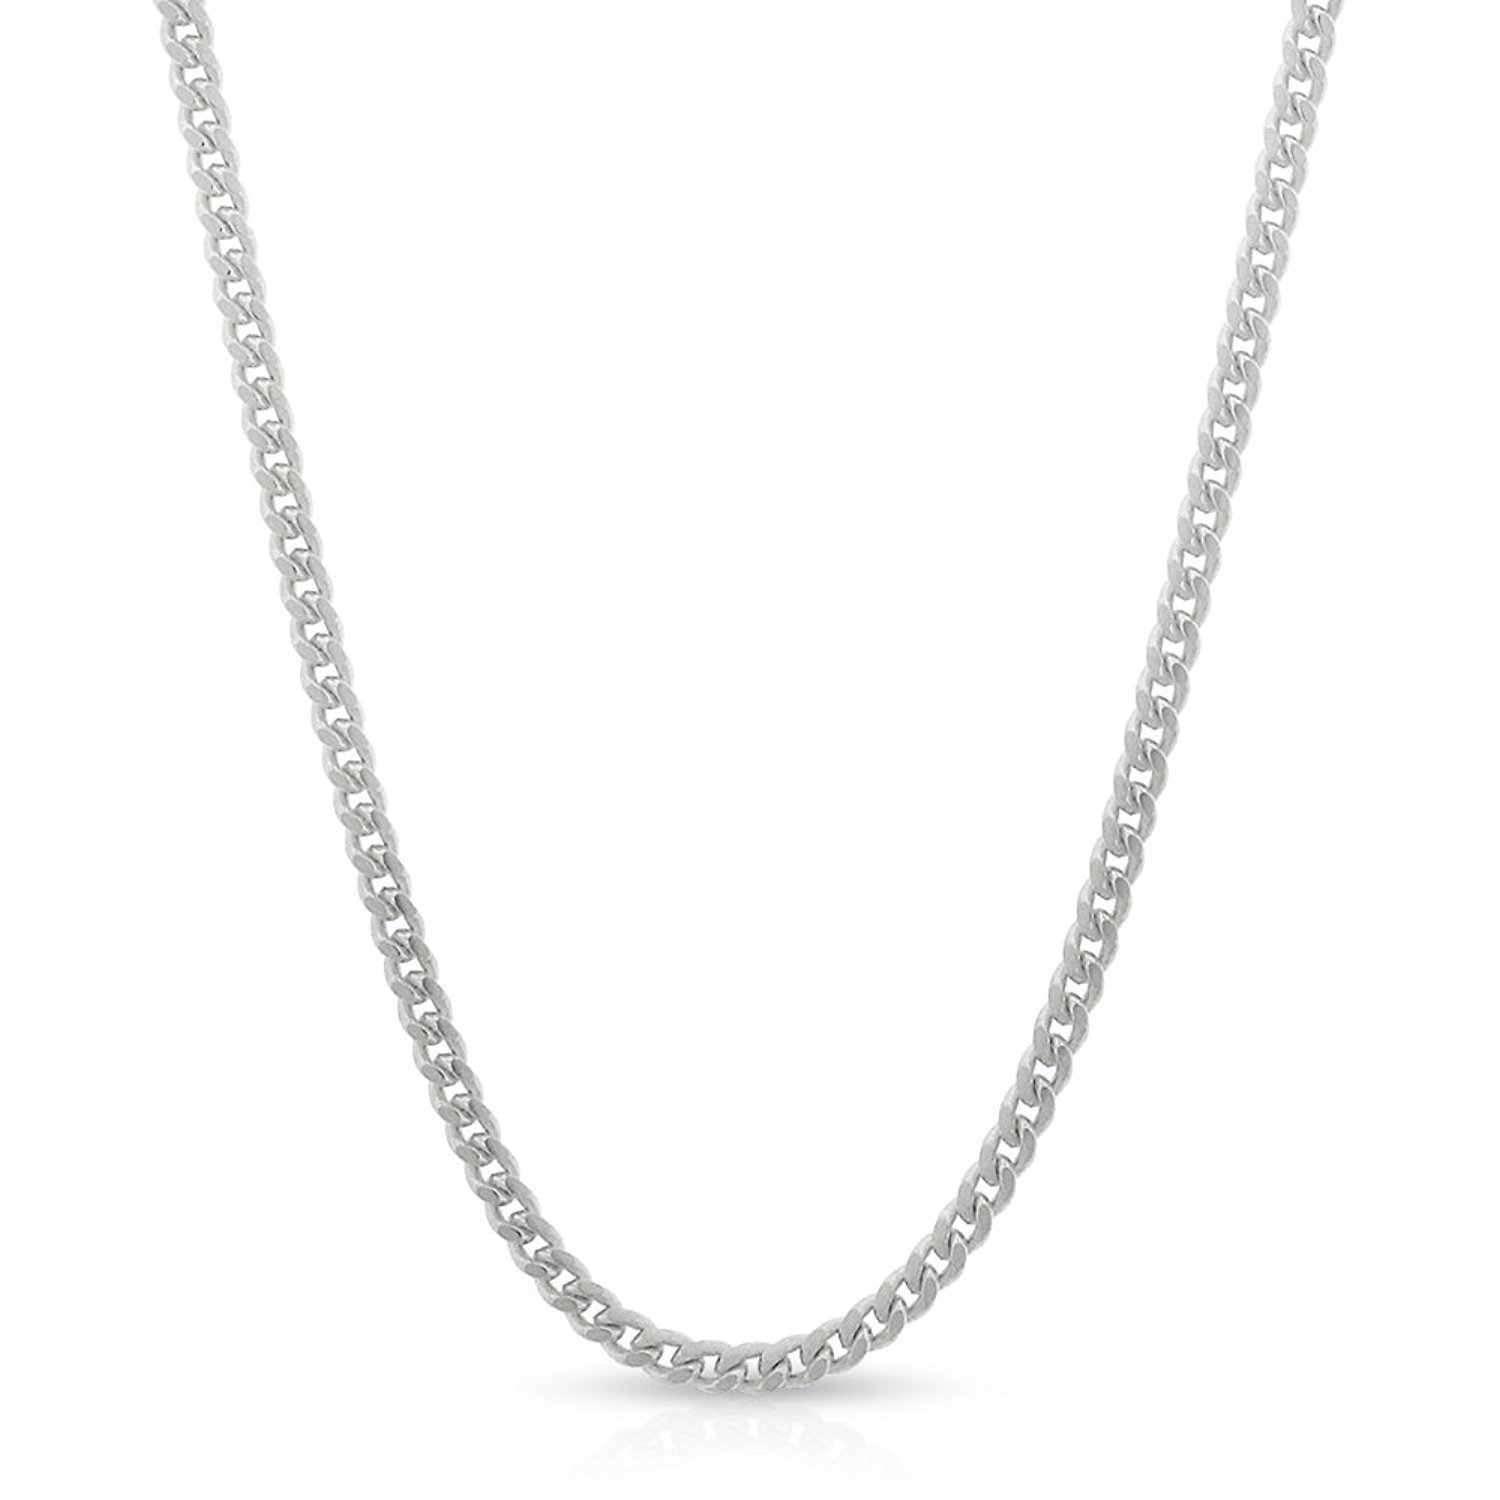 14k White Gold 2mm Solid Miami Cuban Curb Link Thick Necklace Chain 16'' - 30'' (20)